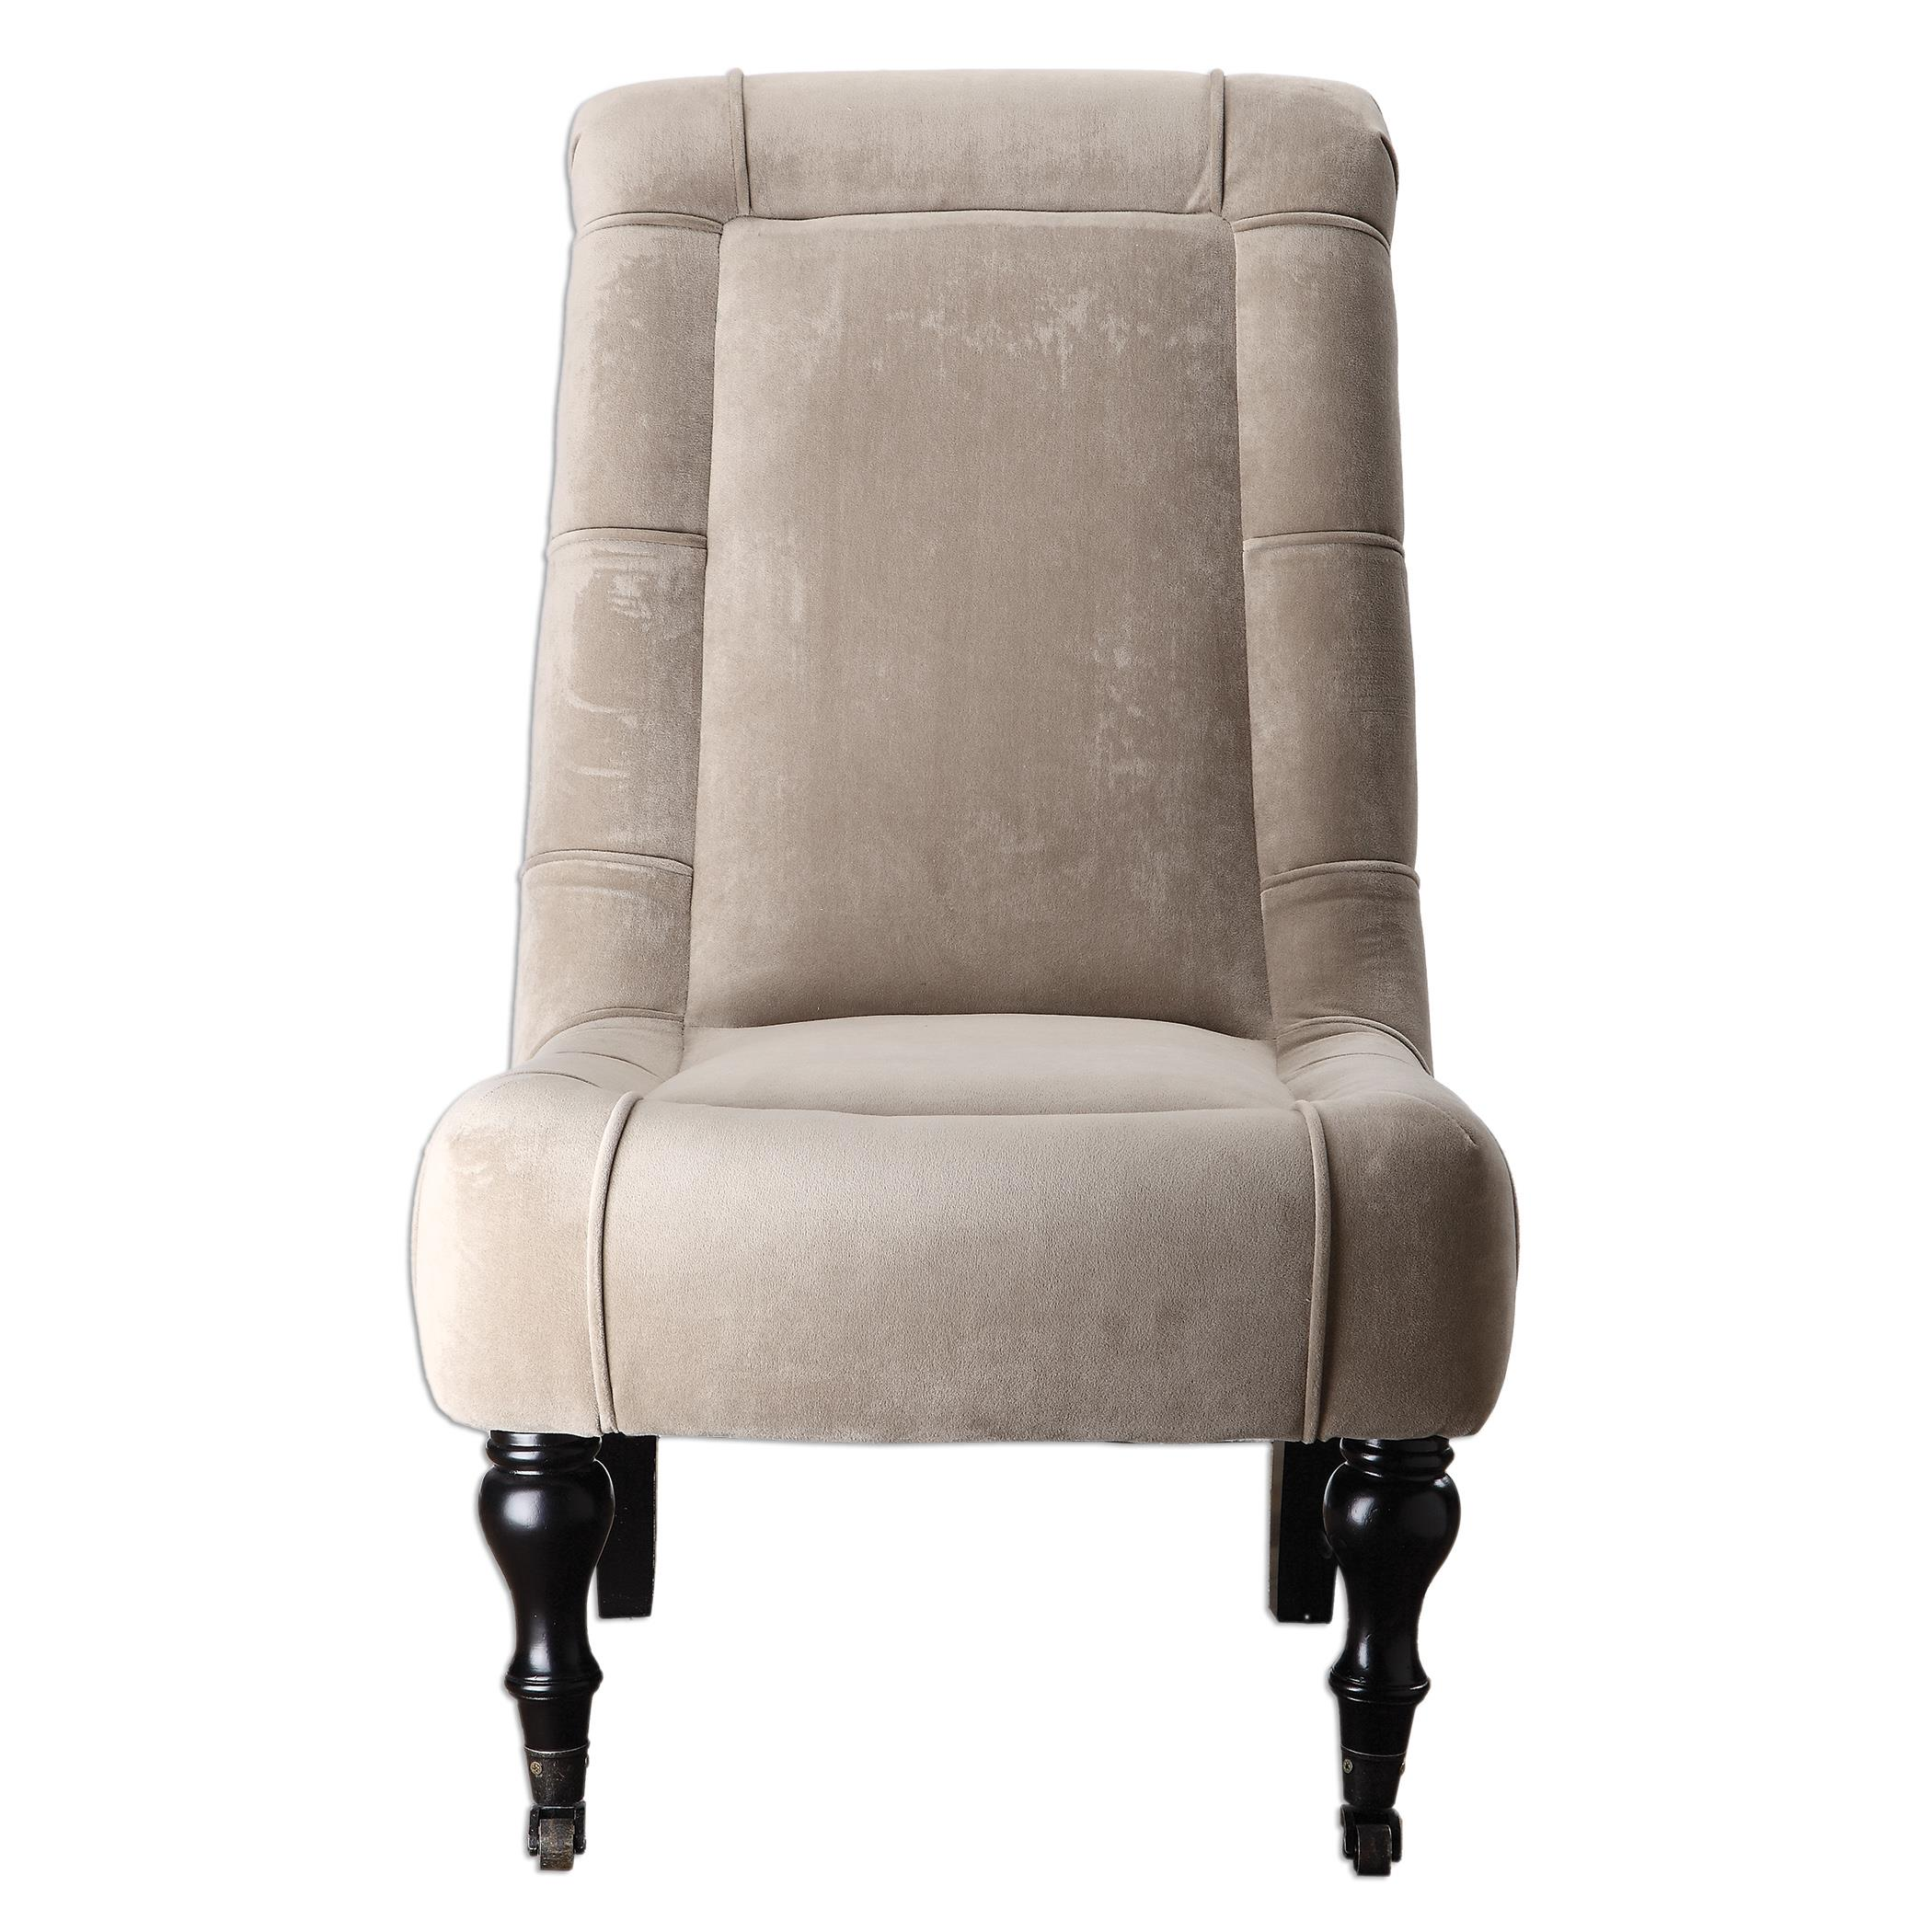 Uttermost Accent Furniture Lizina Armless Parsons Chair - Item Number: 23230